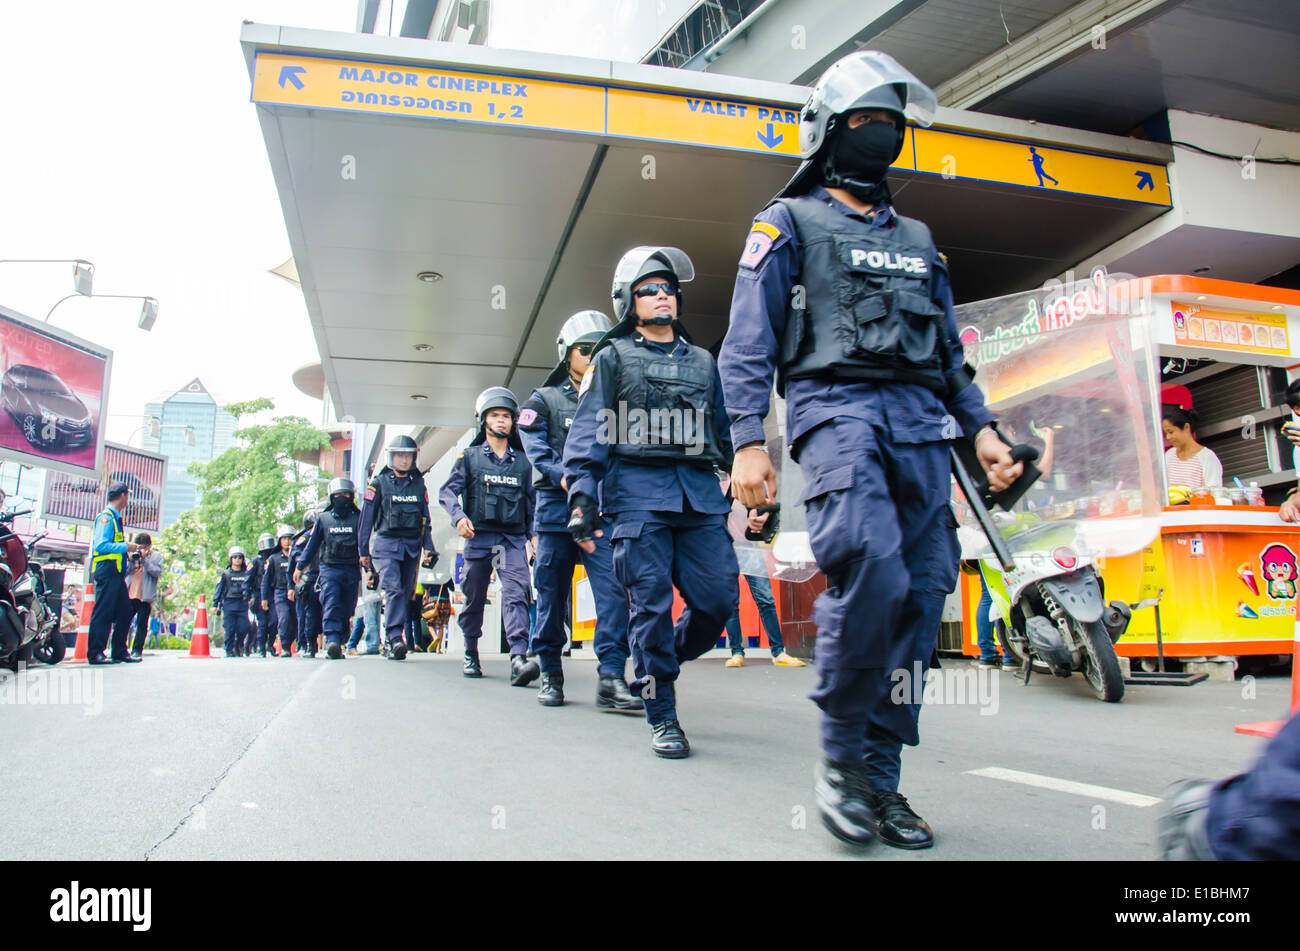 Riot police stand guard during a violent anti-Military coup. - Stock Image